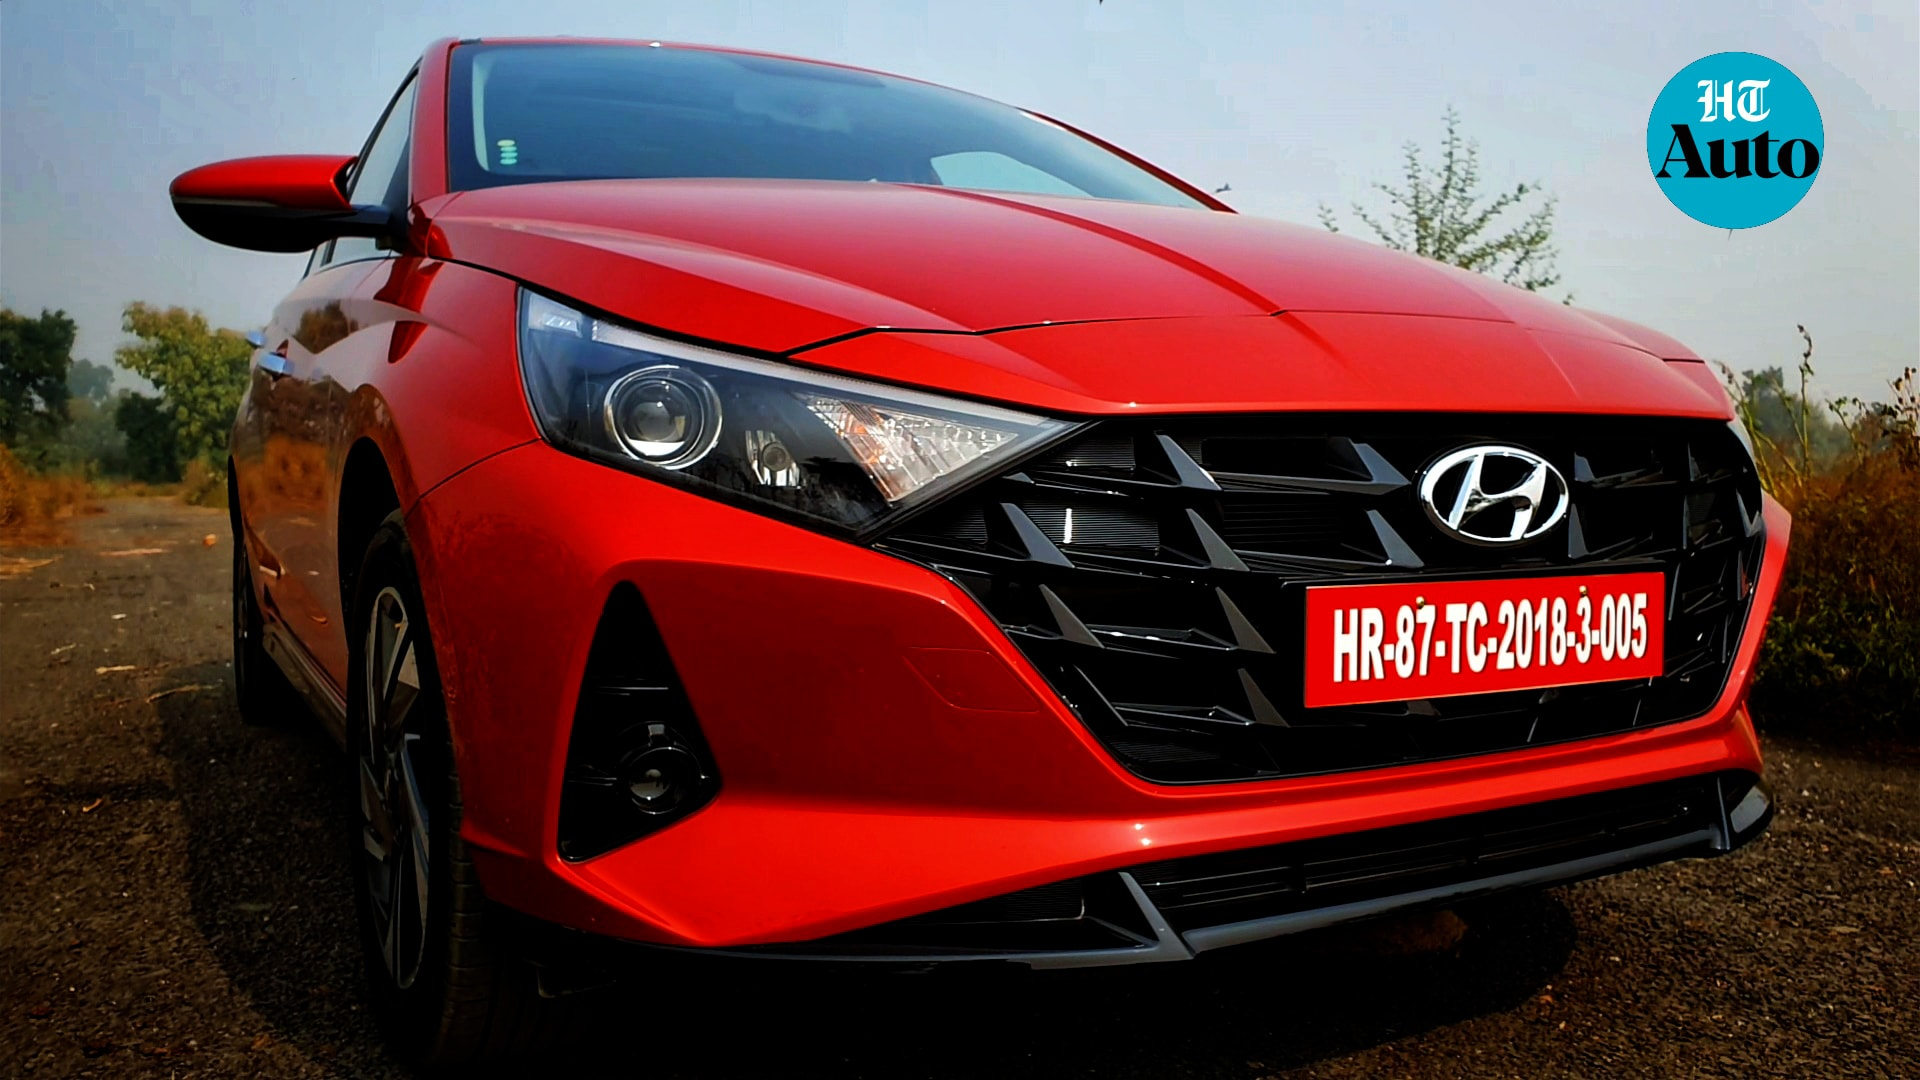 The new premium hatchback sports a Parametric Jewel pattern grille in black which goes well with the red but also blends with most of the colour options available. The LED headlights are sleek and sharper than before while the fog lamps now come in a blackened casing to add a bit of visual panache. (HT Photo/Sabyasachi Dasgupta)